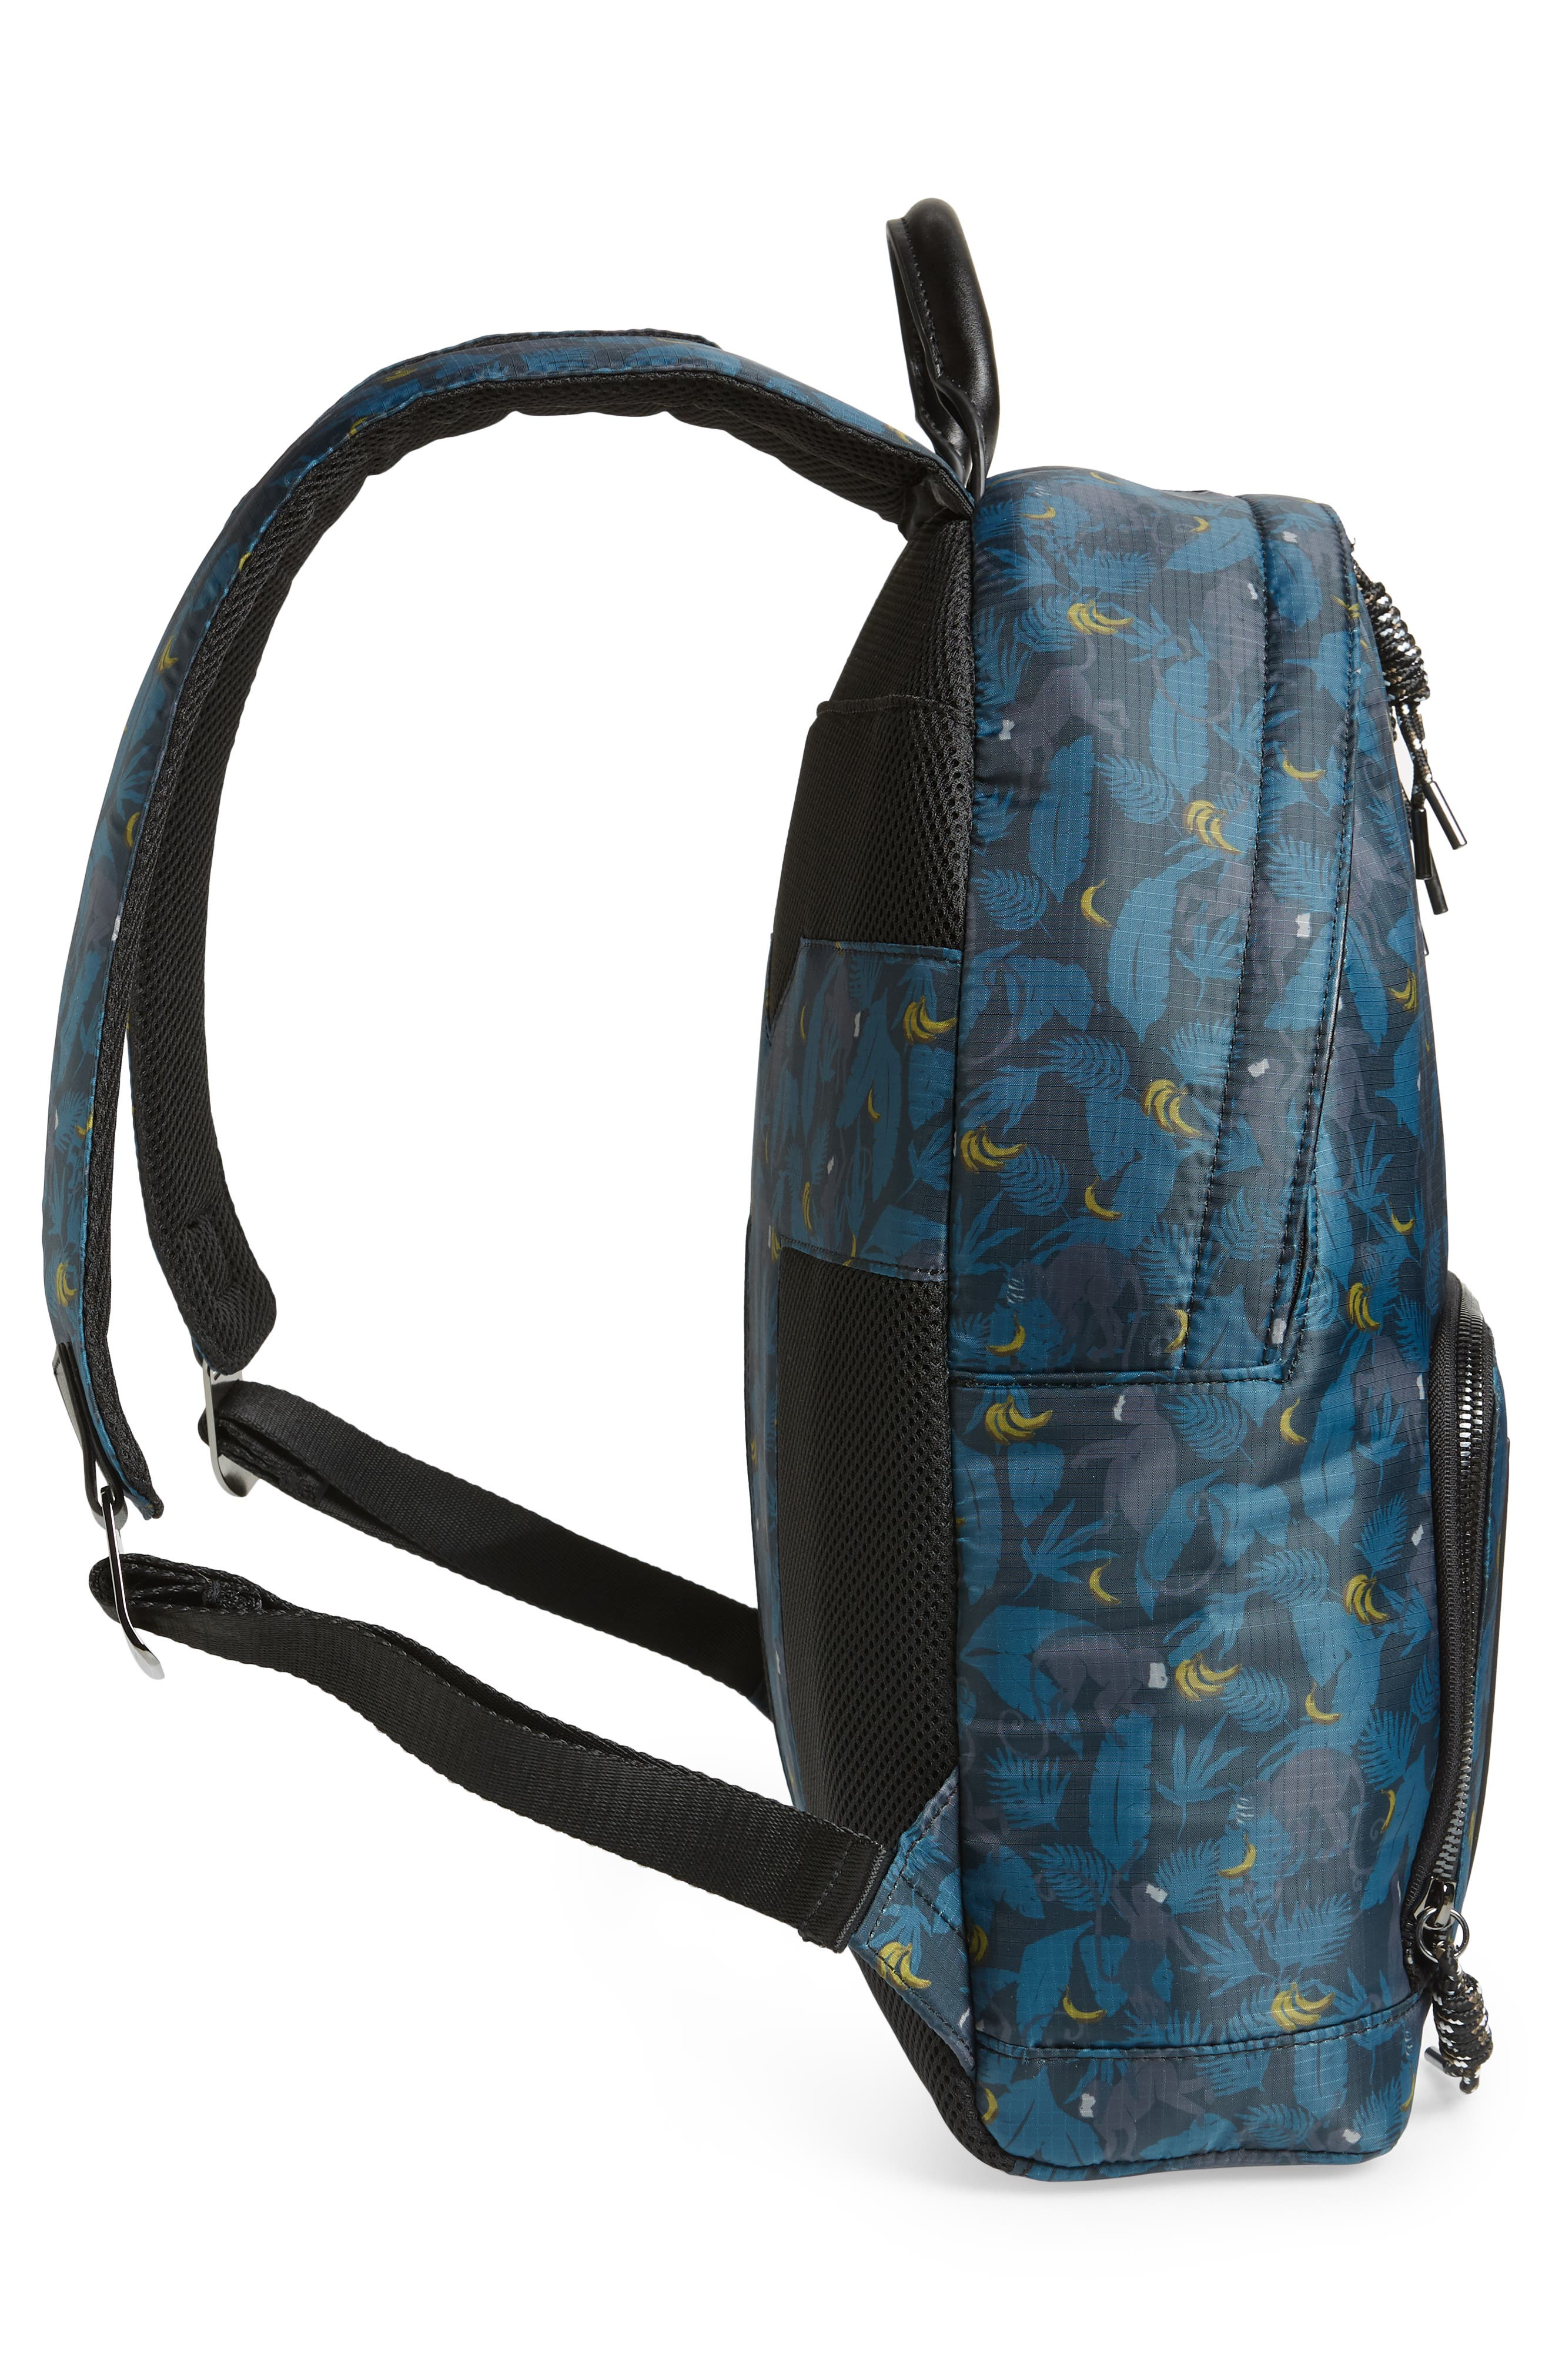 Primate Print Backpack,                             Alternate thumbnail 5, color,                             NAVY